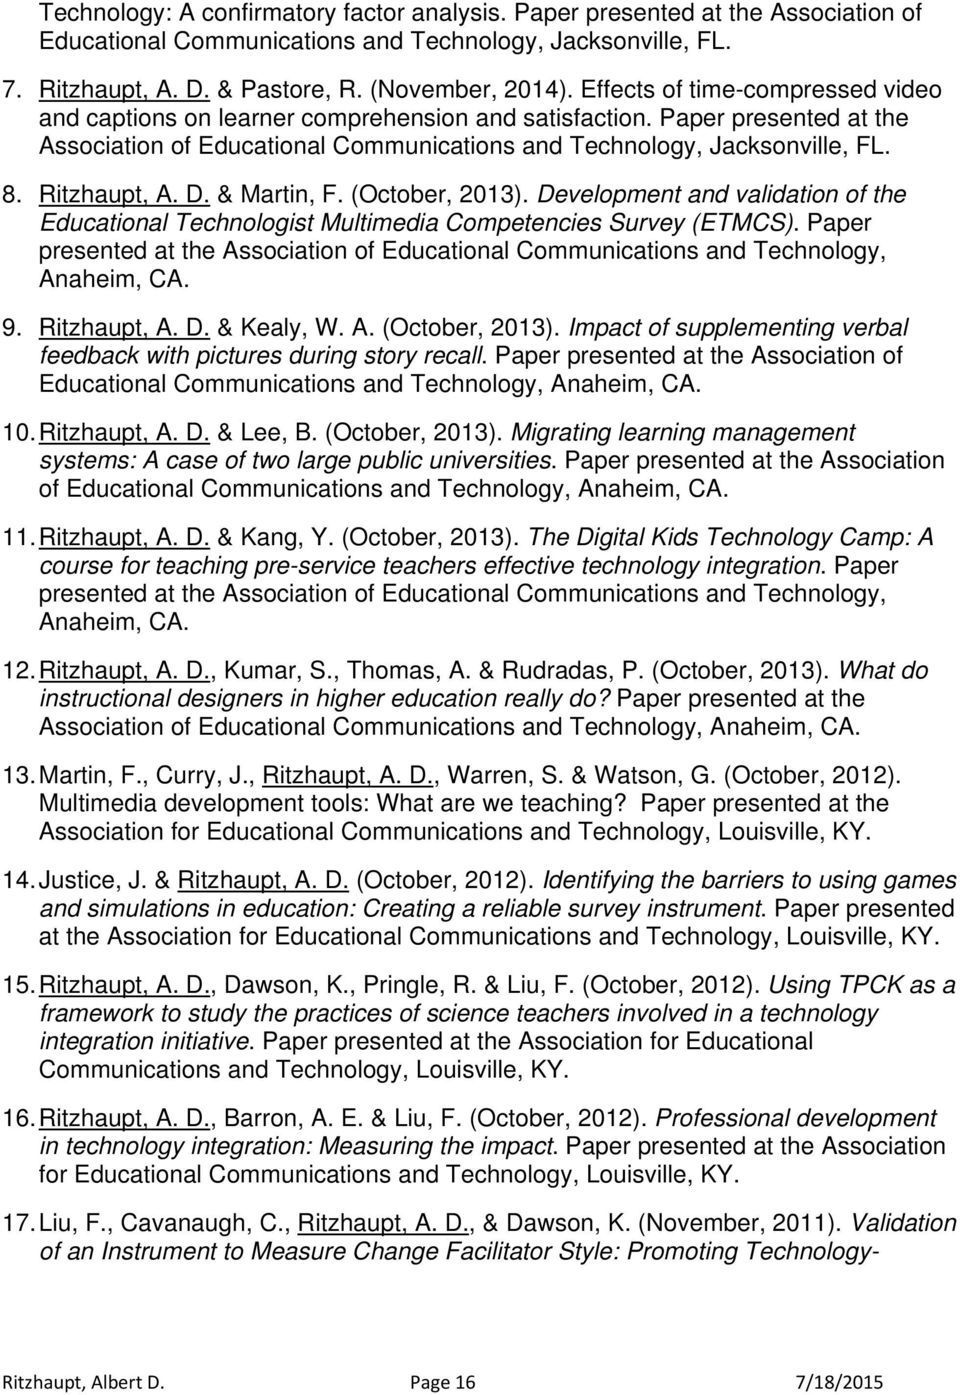 Ritzhaupt, A. D. & Martin, F. (October, 2013). Development and validation of the Educational Technologist Multimedia Competencies Survey (ETMCS).